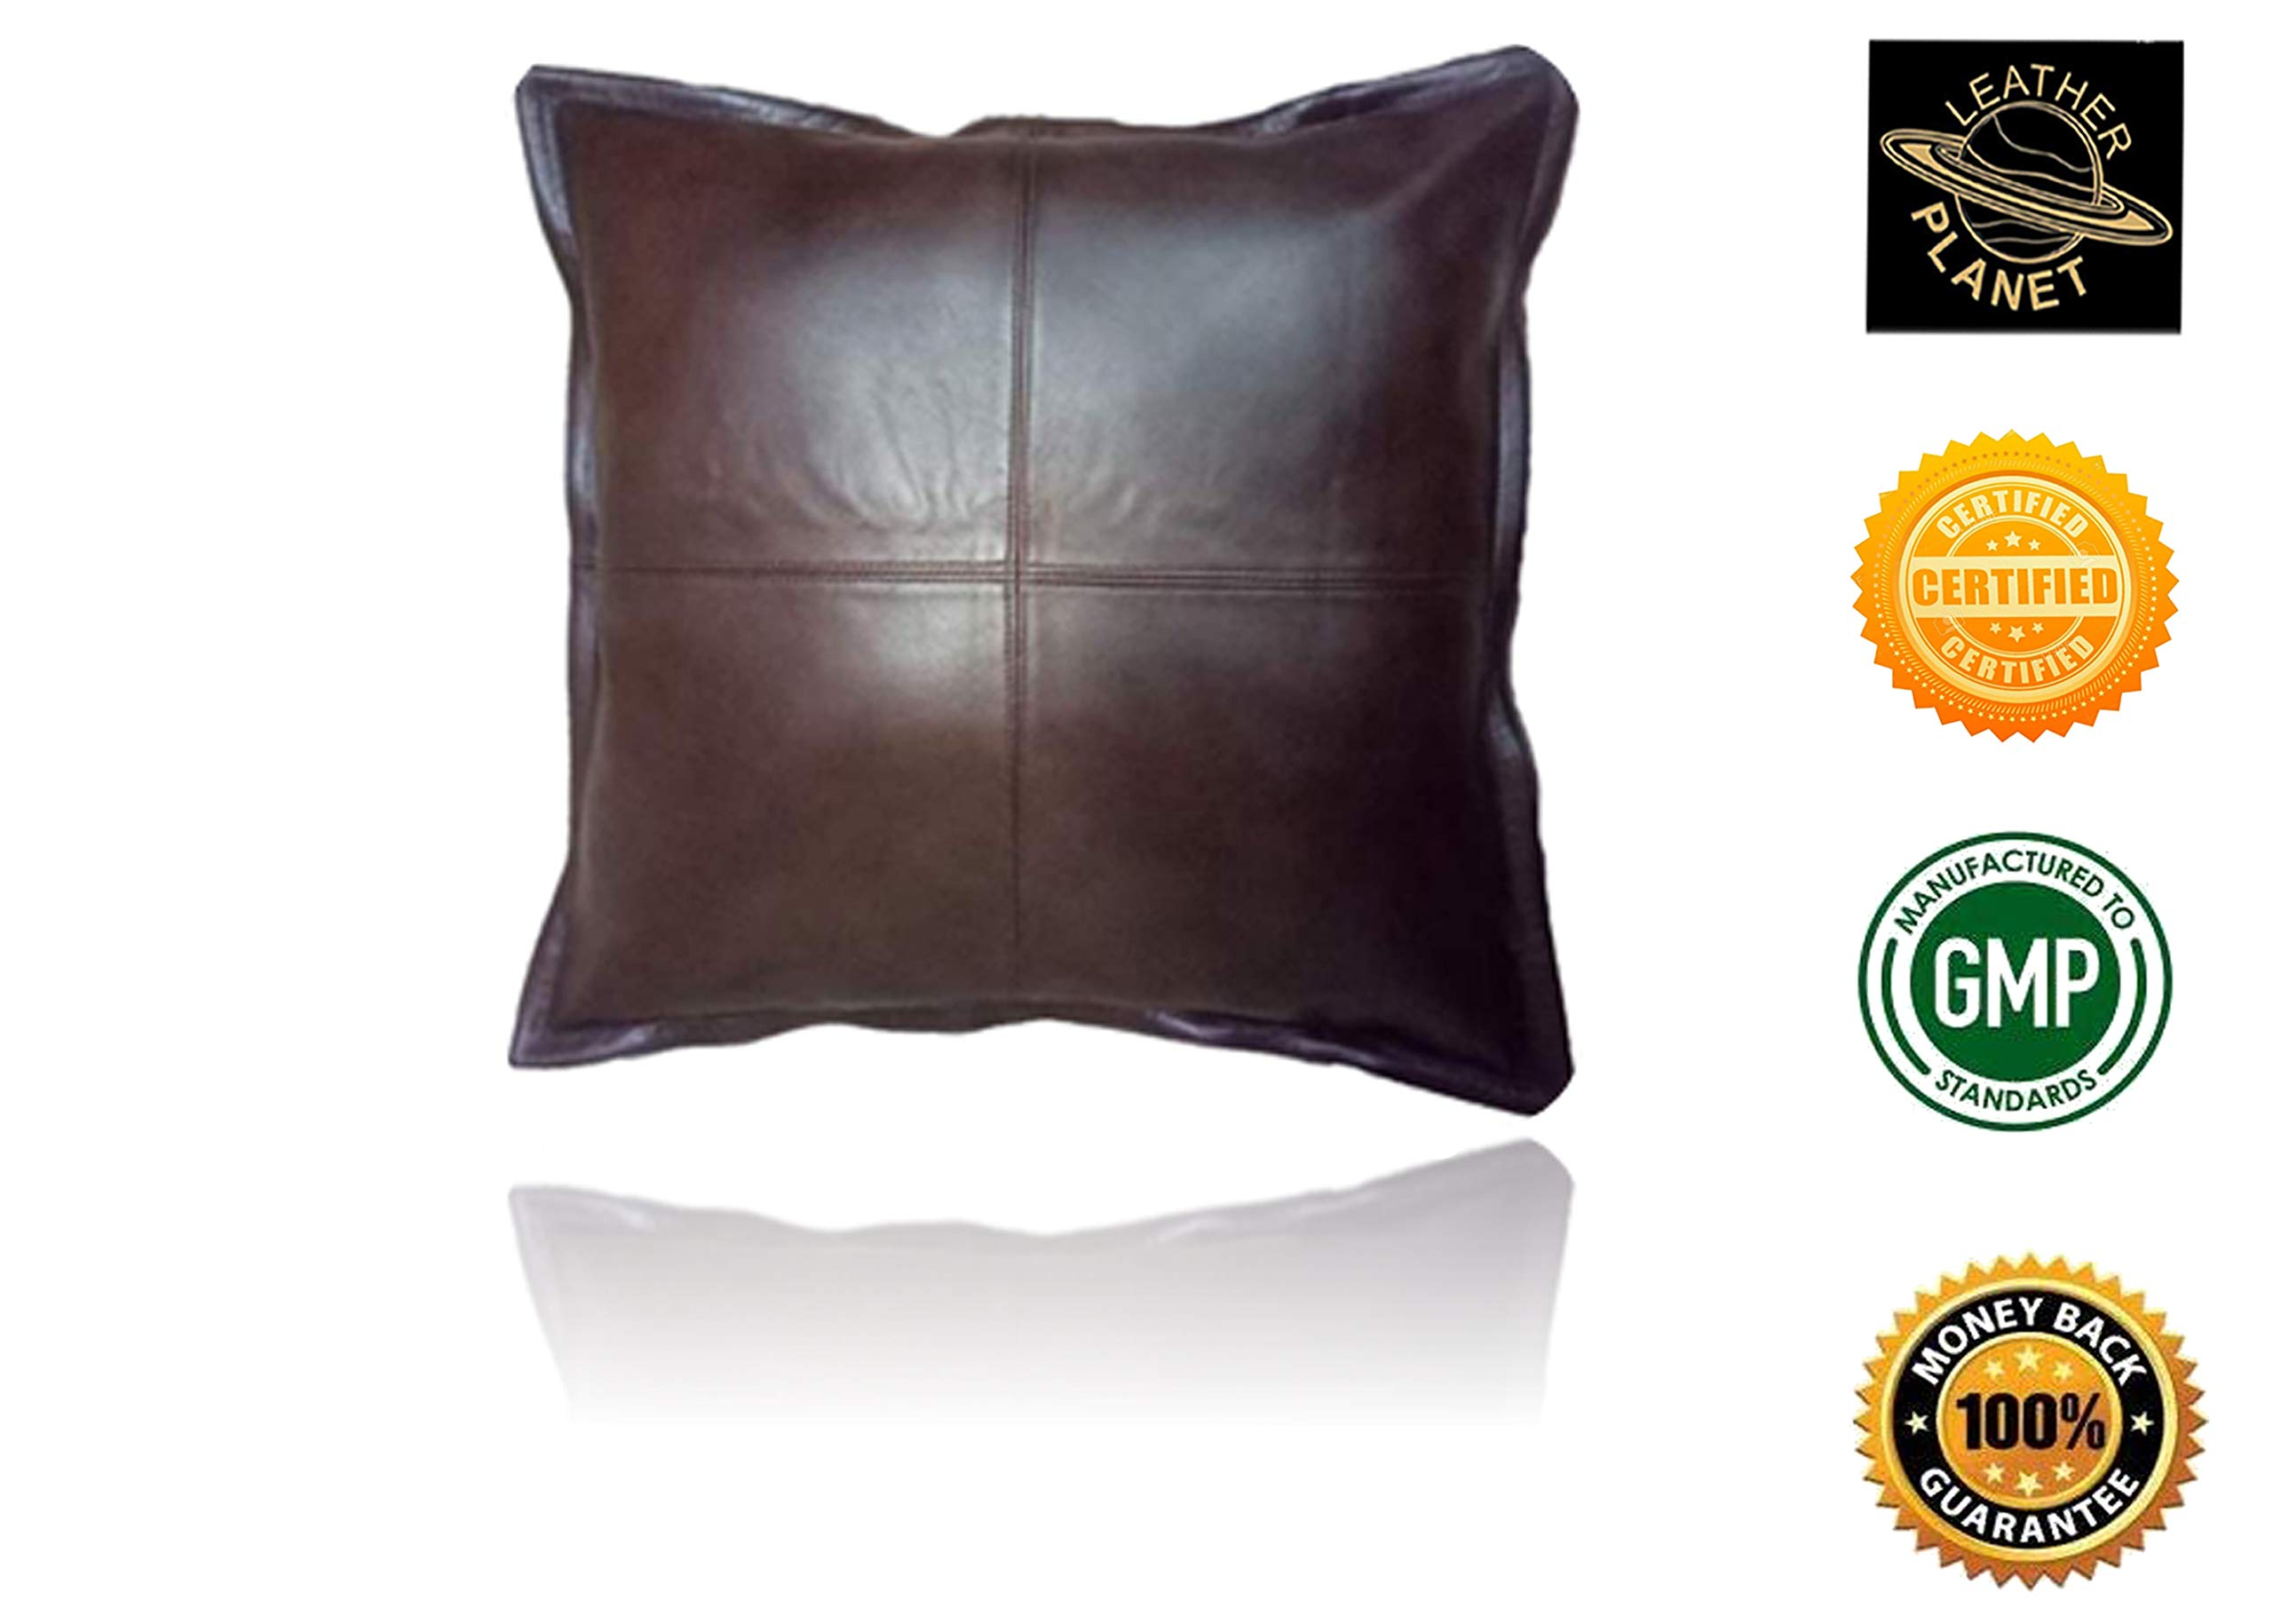 Leather Planet 100% Lambskin Leather Throw Pillow Cushion Cover - Sofa Cushion Case - Decorative Throw Cover for Indoor and Outdoor - 18x18 Inches - Box Dark Brown Pack of 1